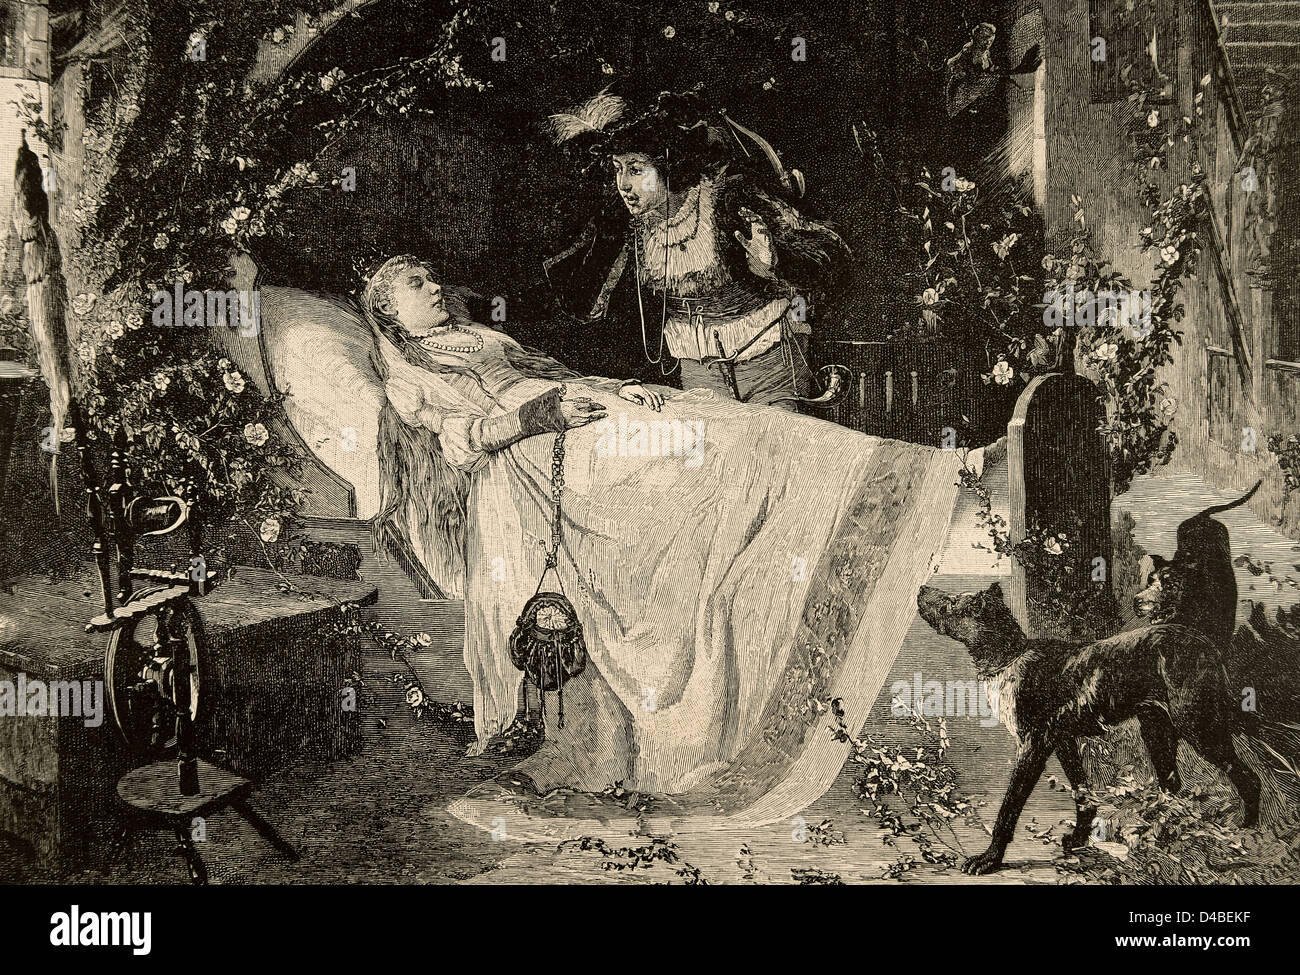 The Sleeping Beauty. The miracle of love. Engraving in The Iberian Illustration, 1885. - Stock Image